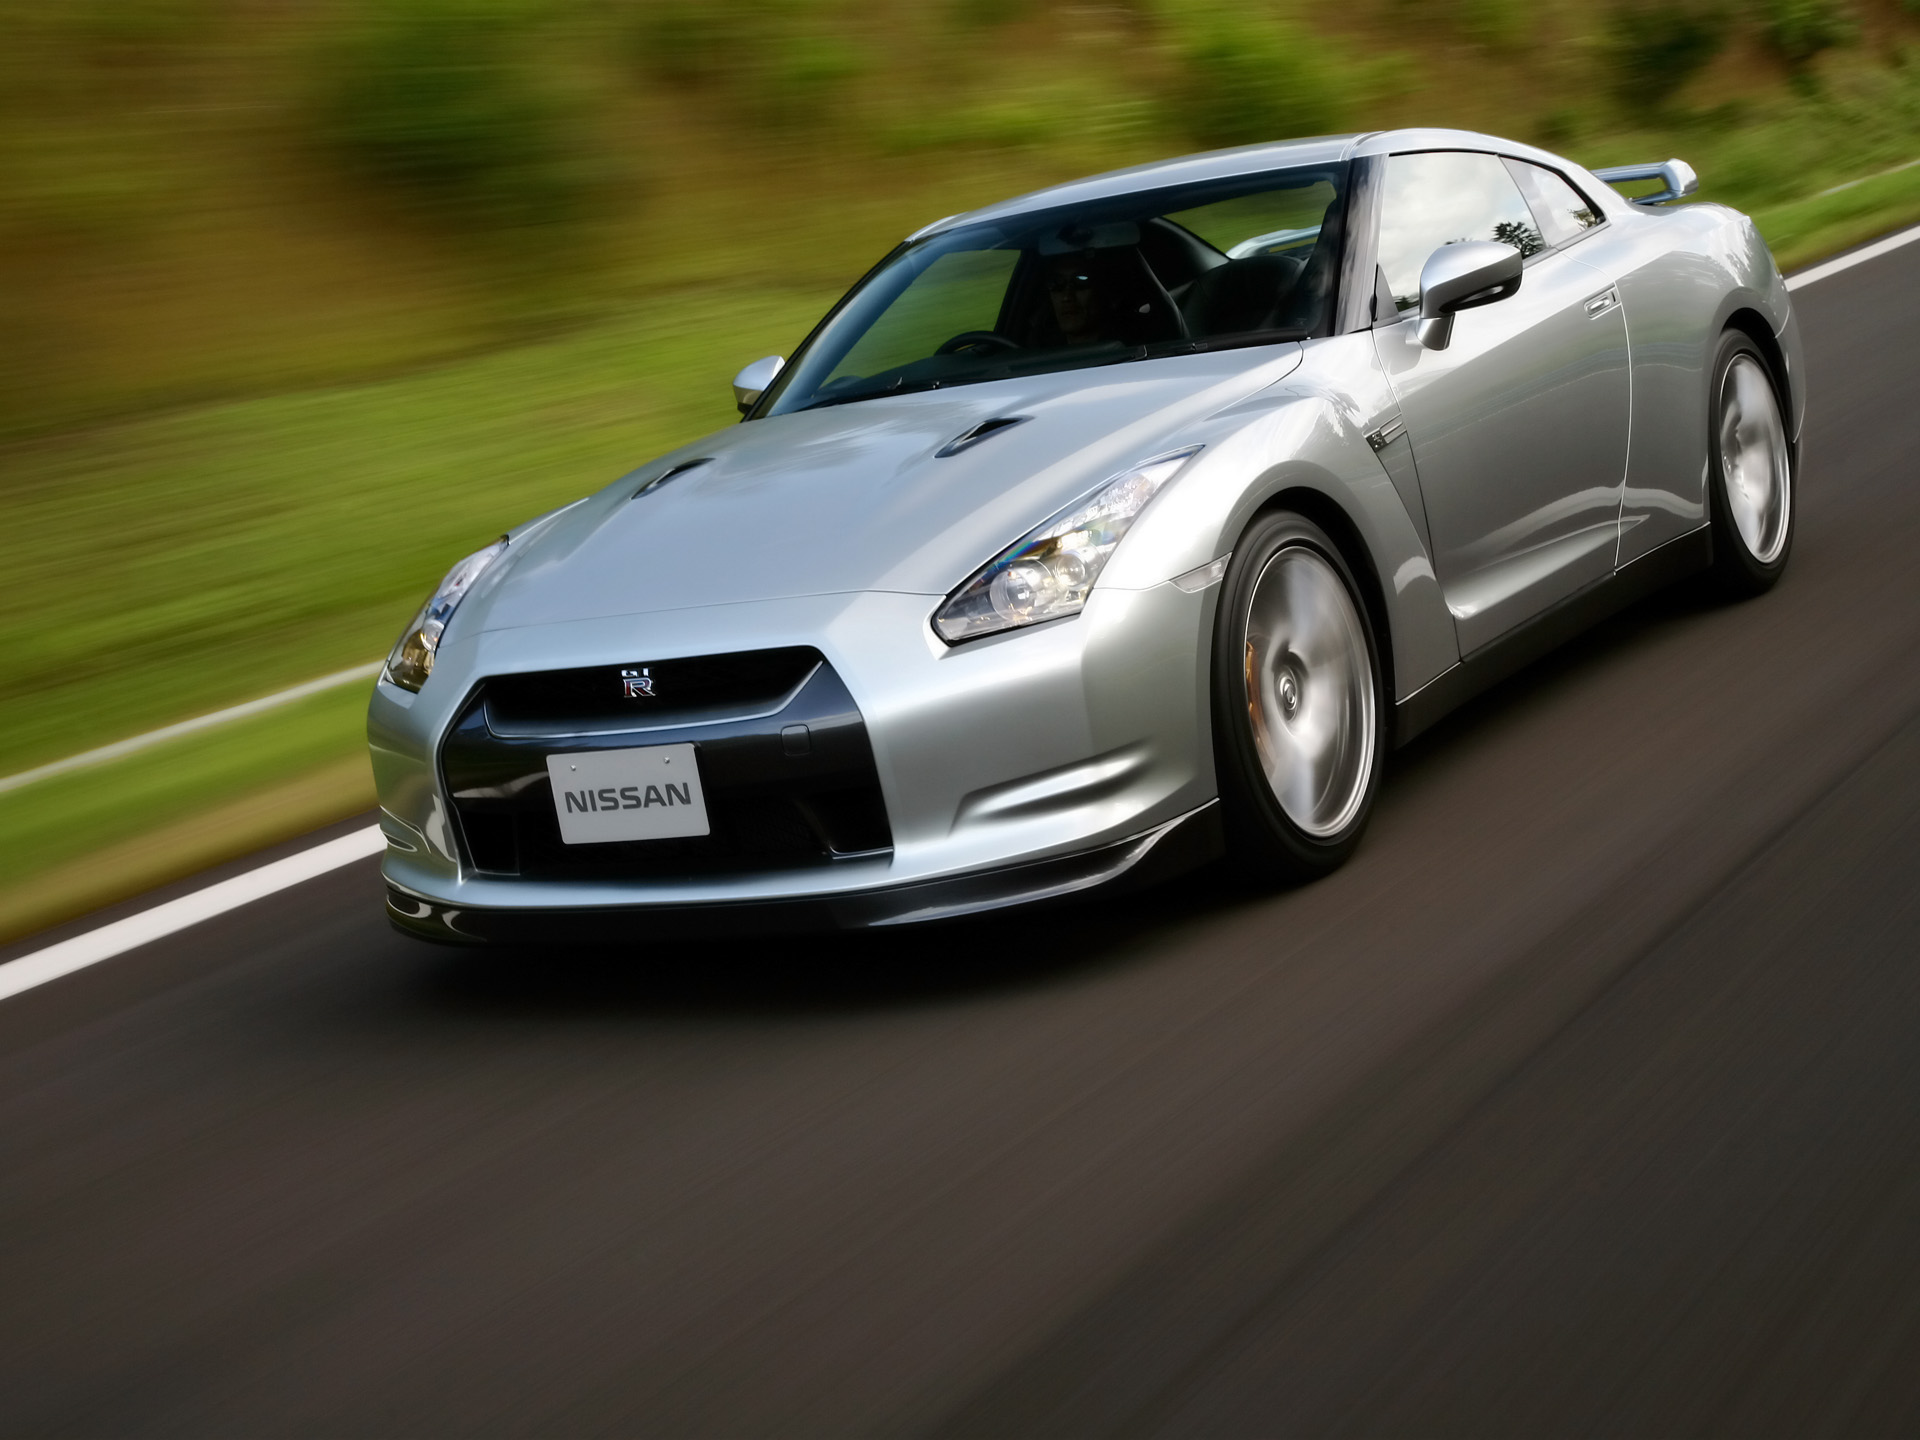 2008 Nissan Gt R 1920x1440 1 Tapety Na Pulpit